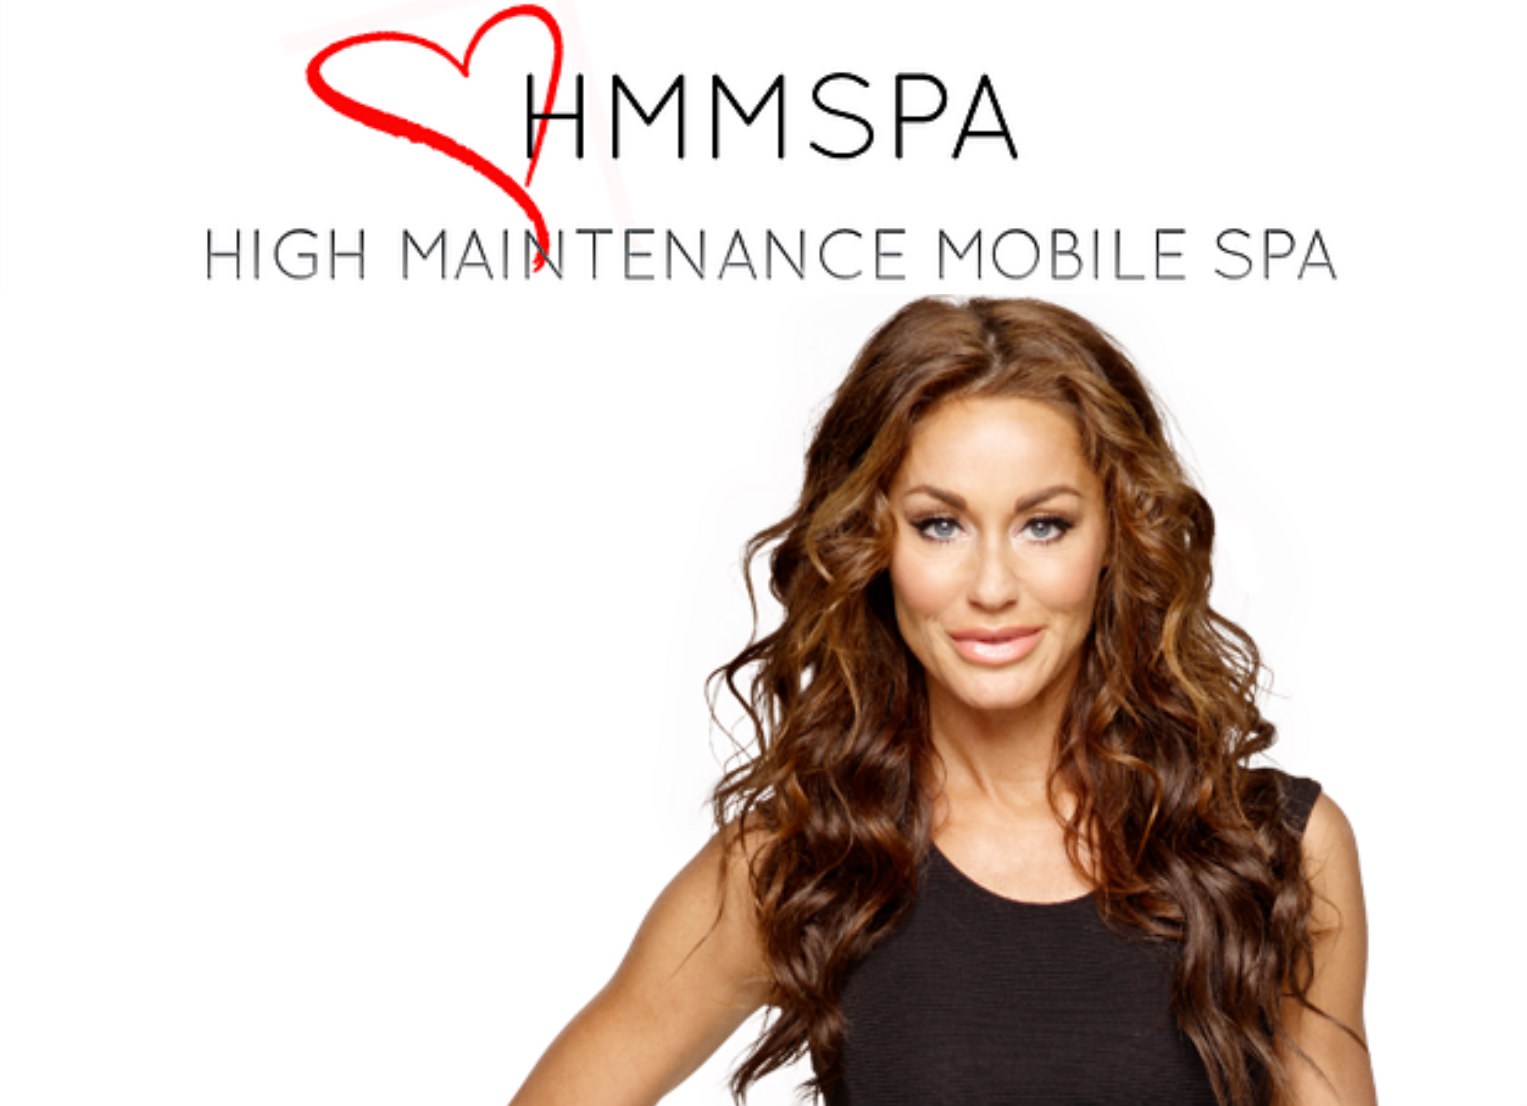 high maintenance mobile spa, Melanie marden